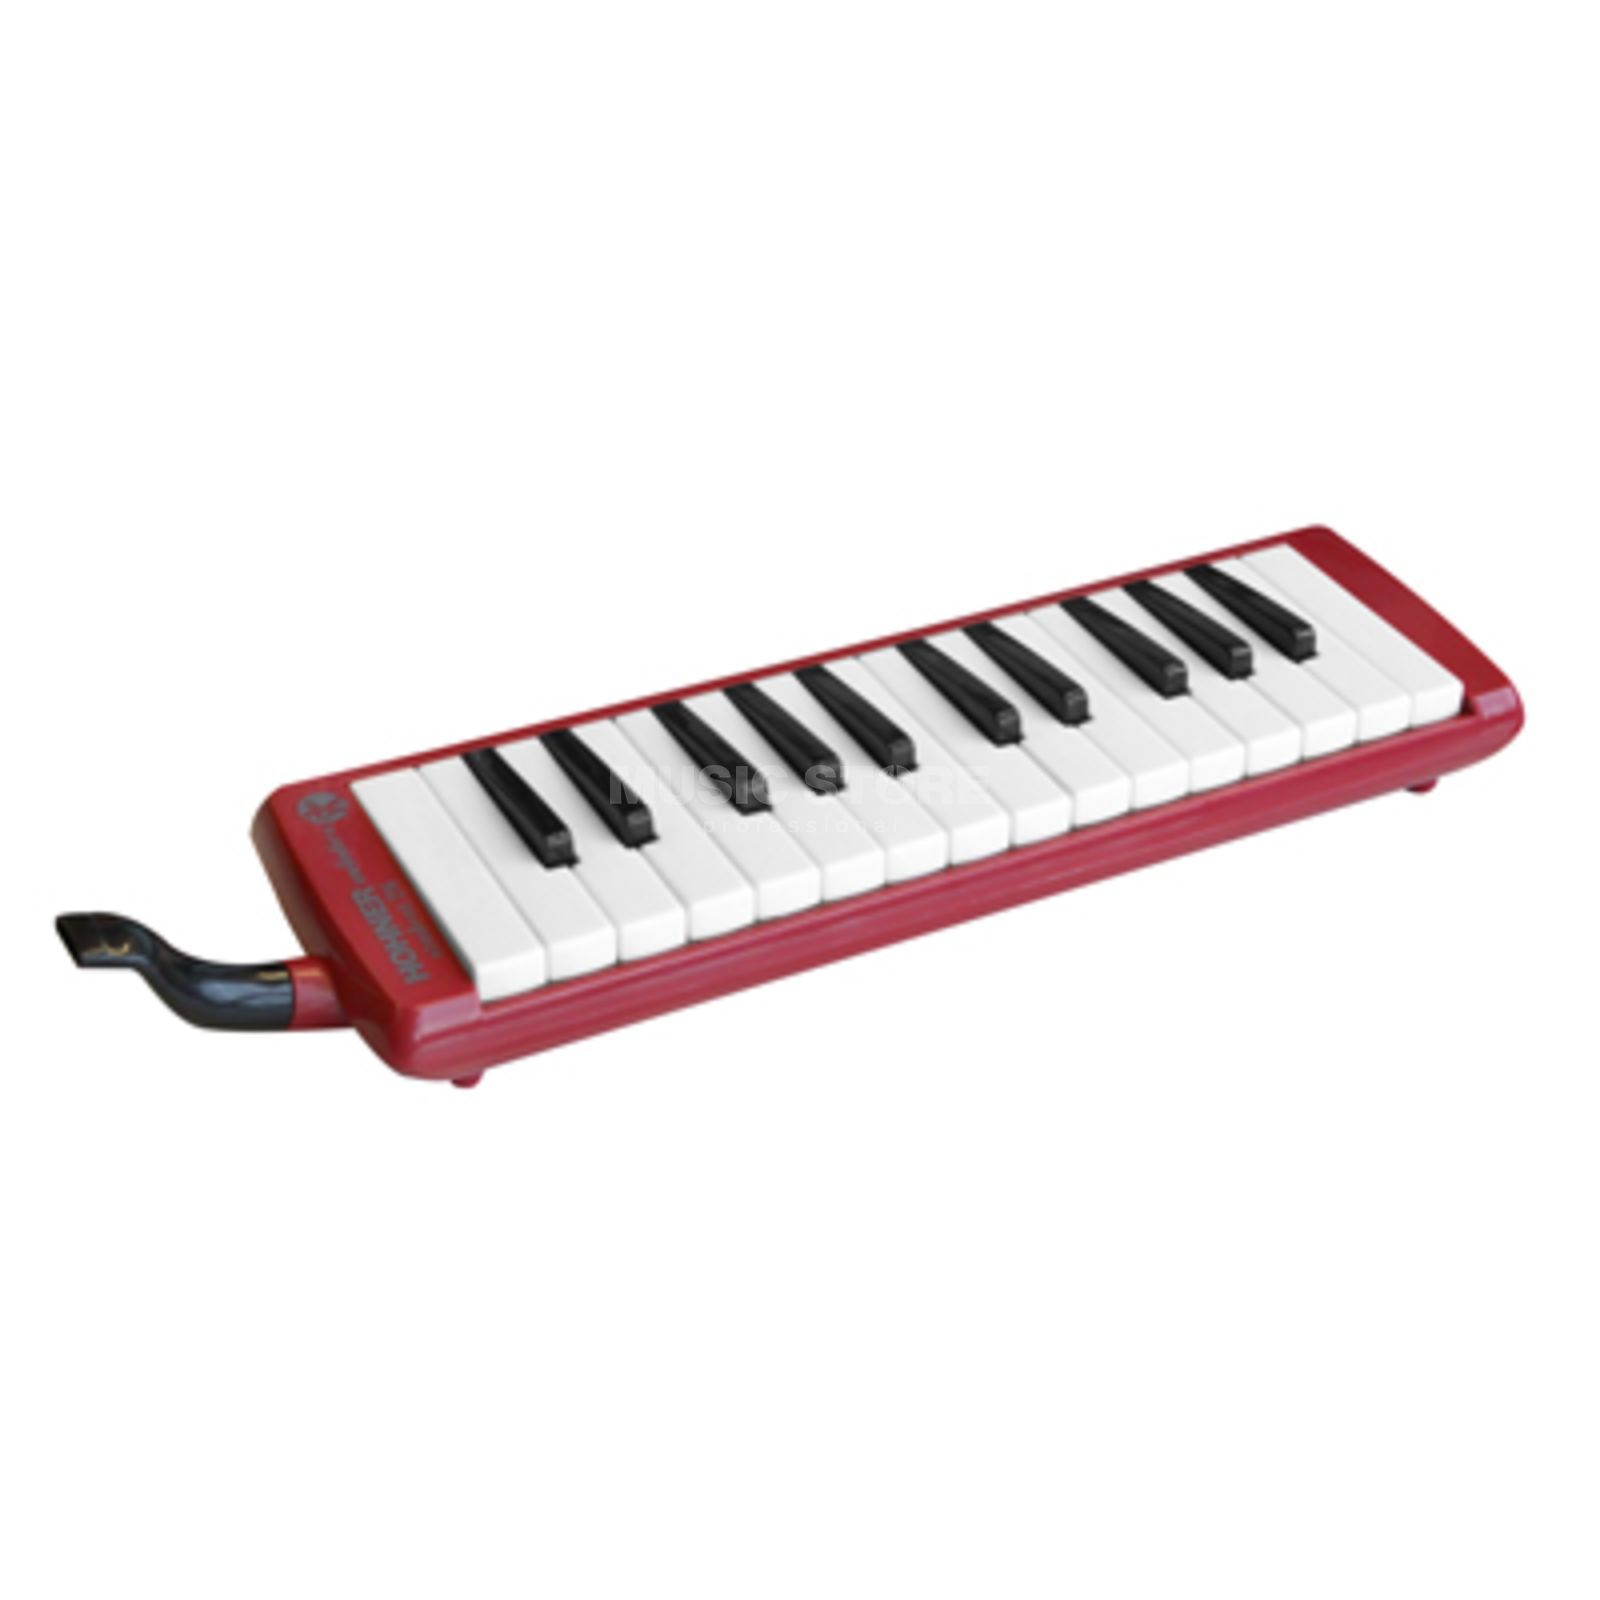 Hohner Student Melodica 26 - Red incl. Bag and Accessories Zdjęcie produktu